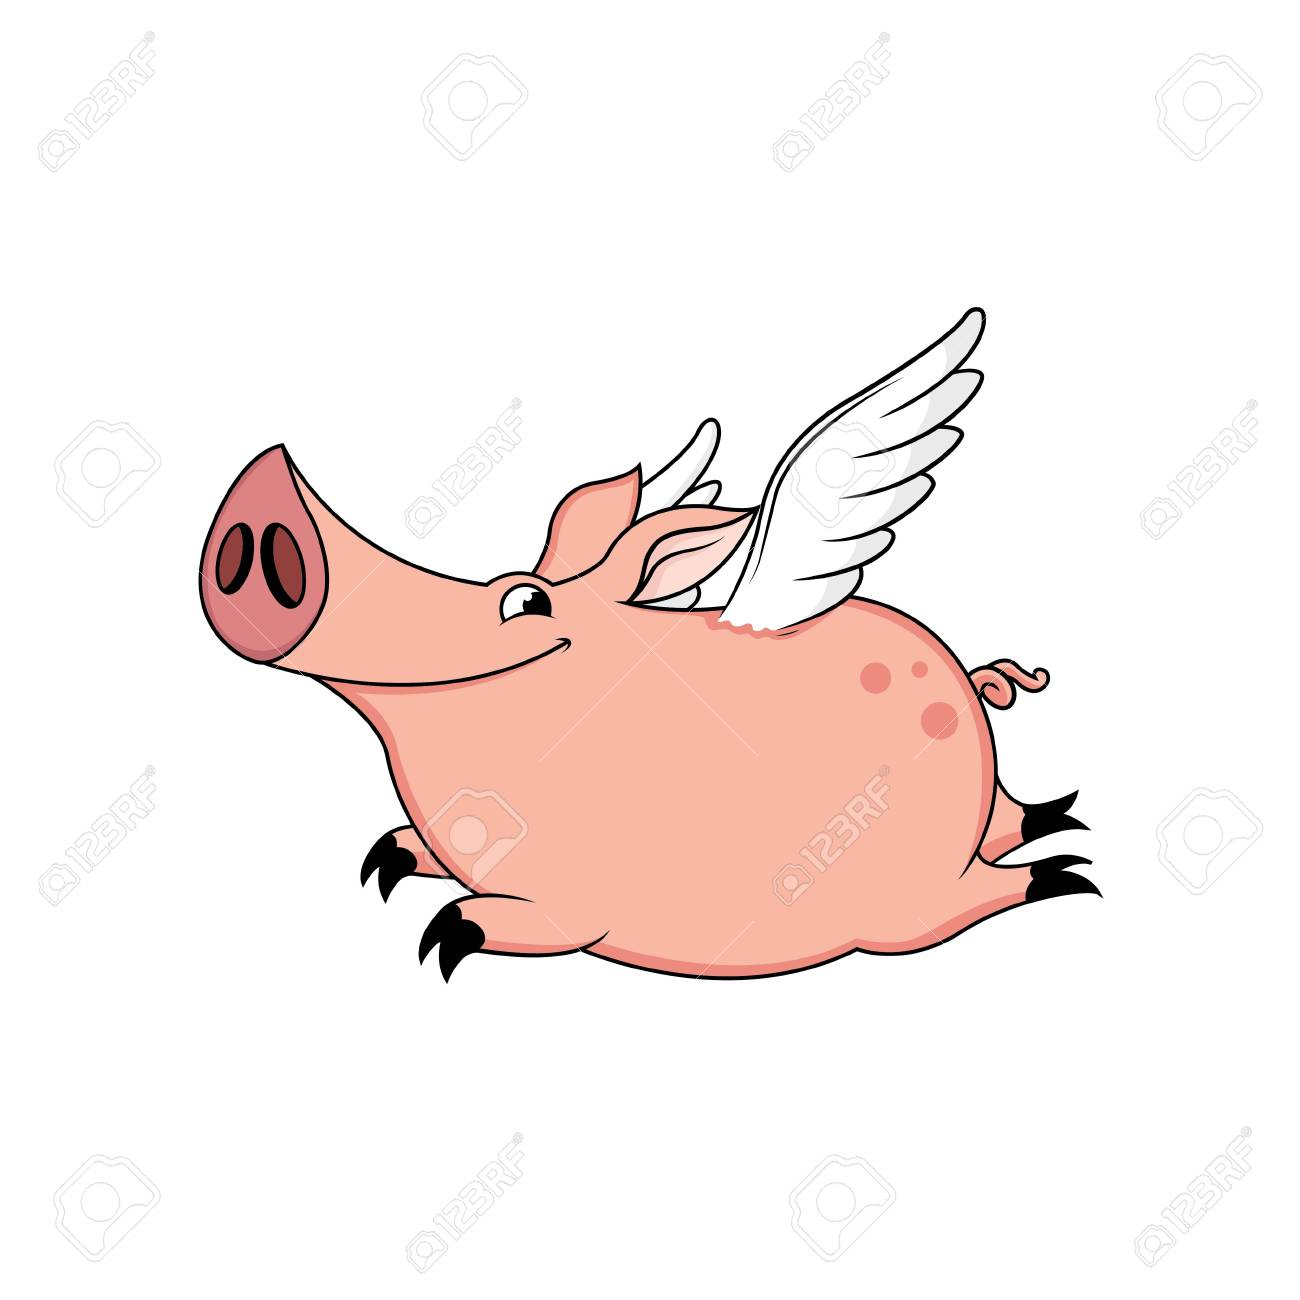 Hand draw cute pig with wings cartoon vector illustration stock vector 104764259